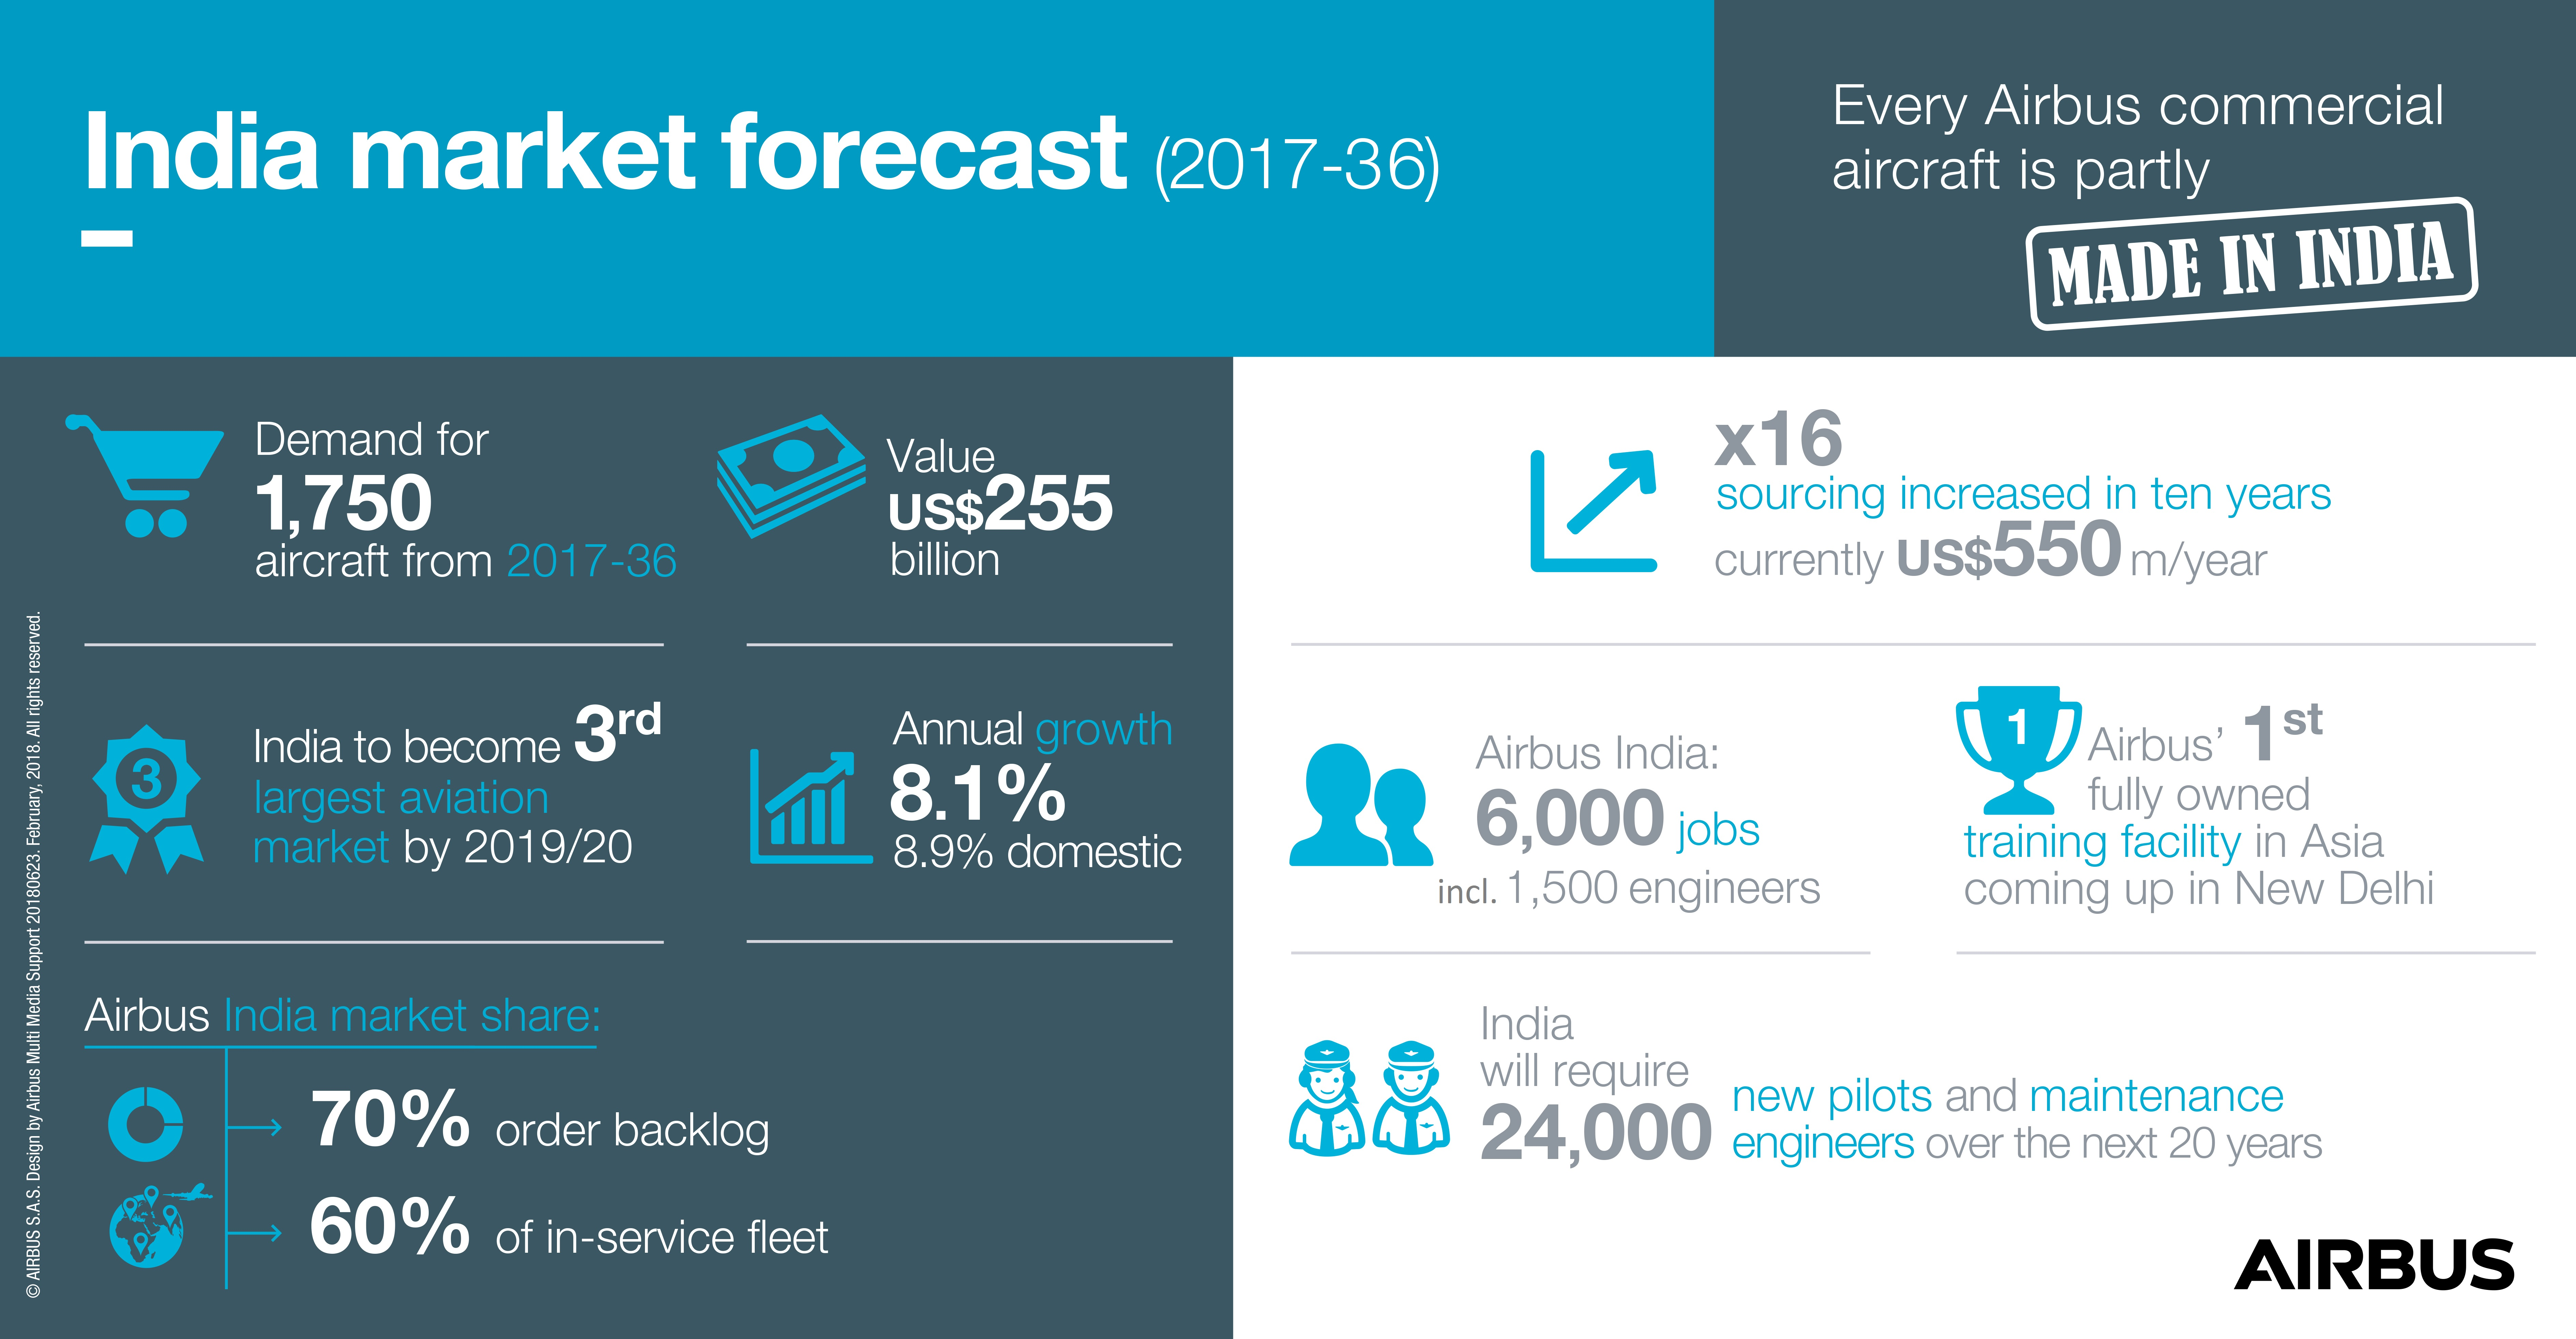 India-Market-Forecast-infographic